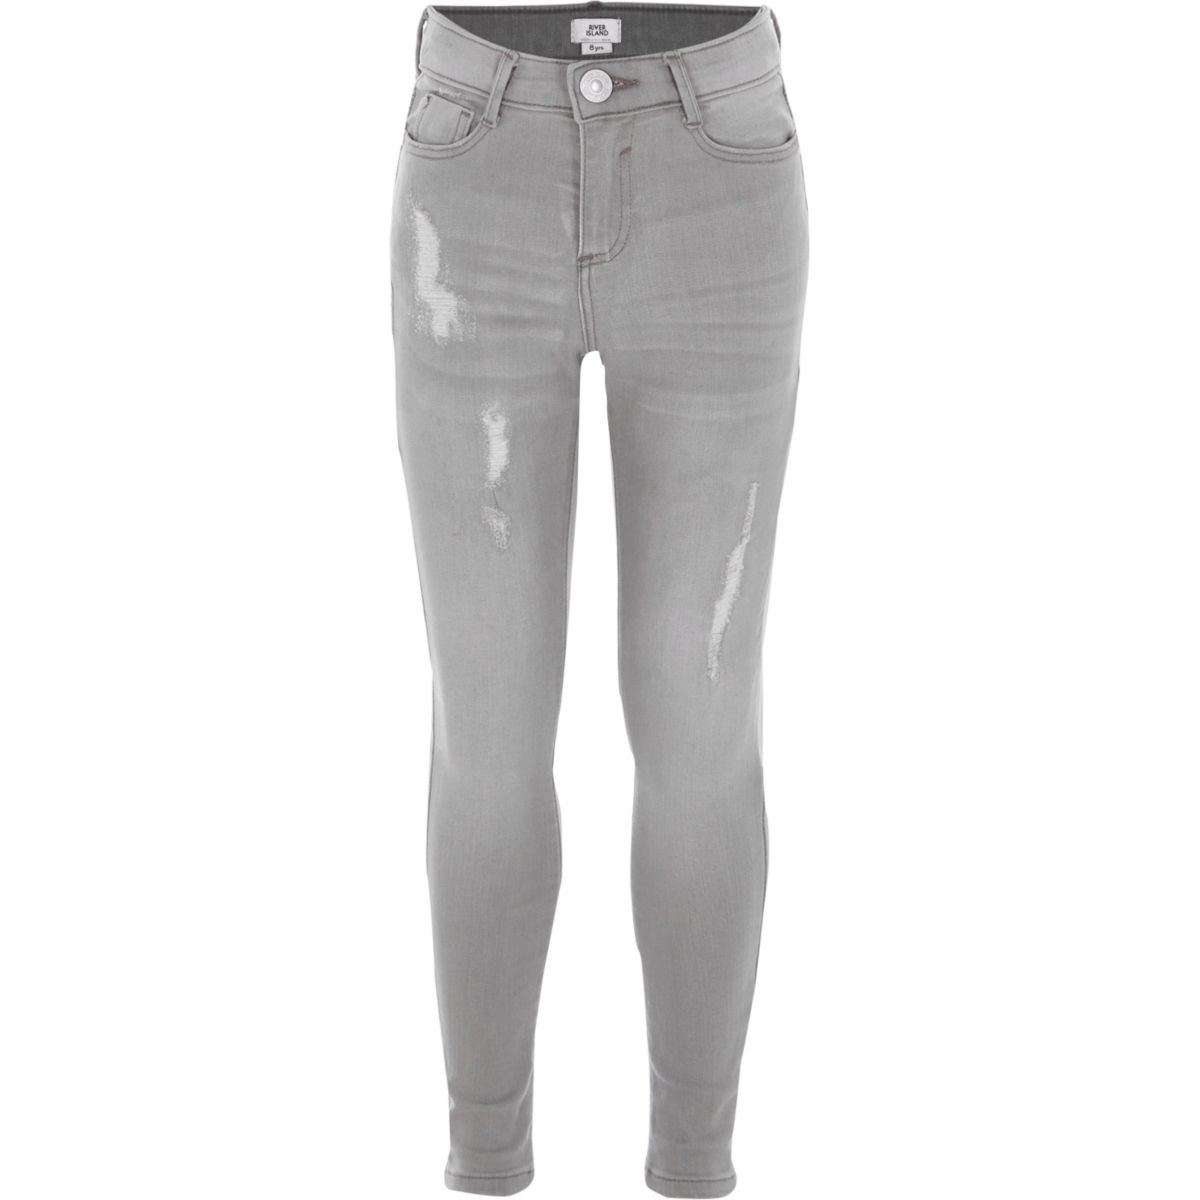 Girls light grey ripped Amelie skinny jeans - Denim - Sale - girls